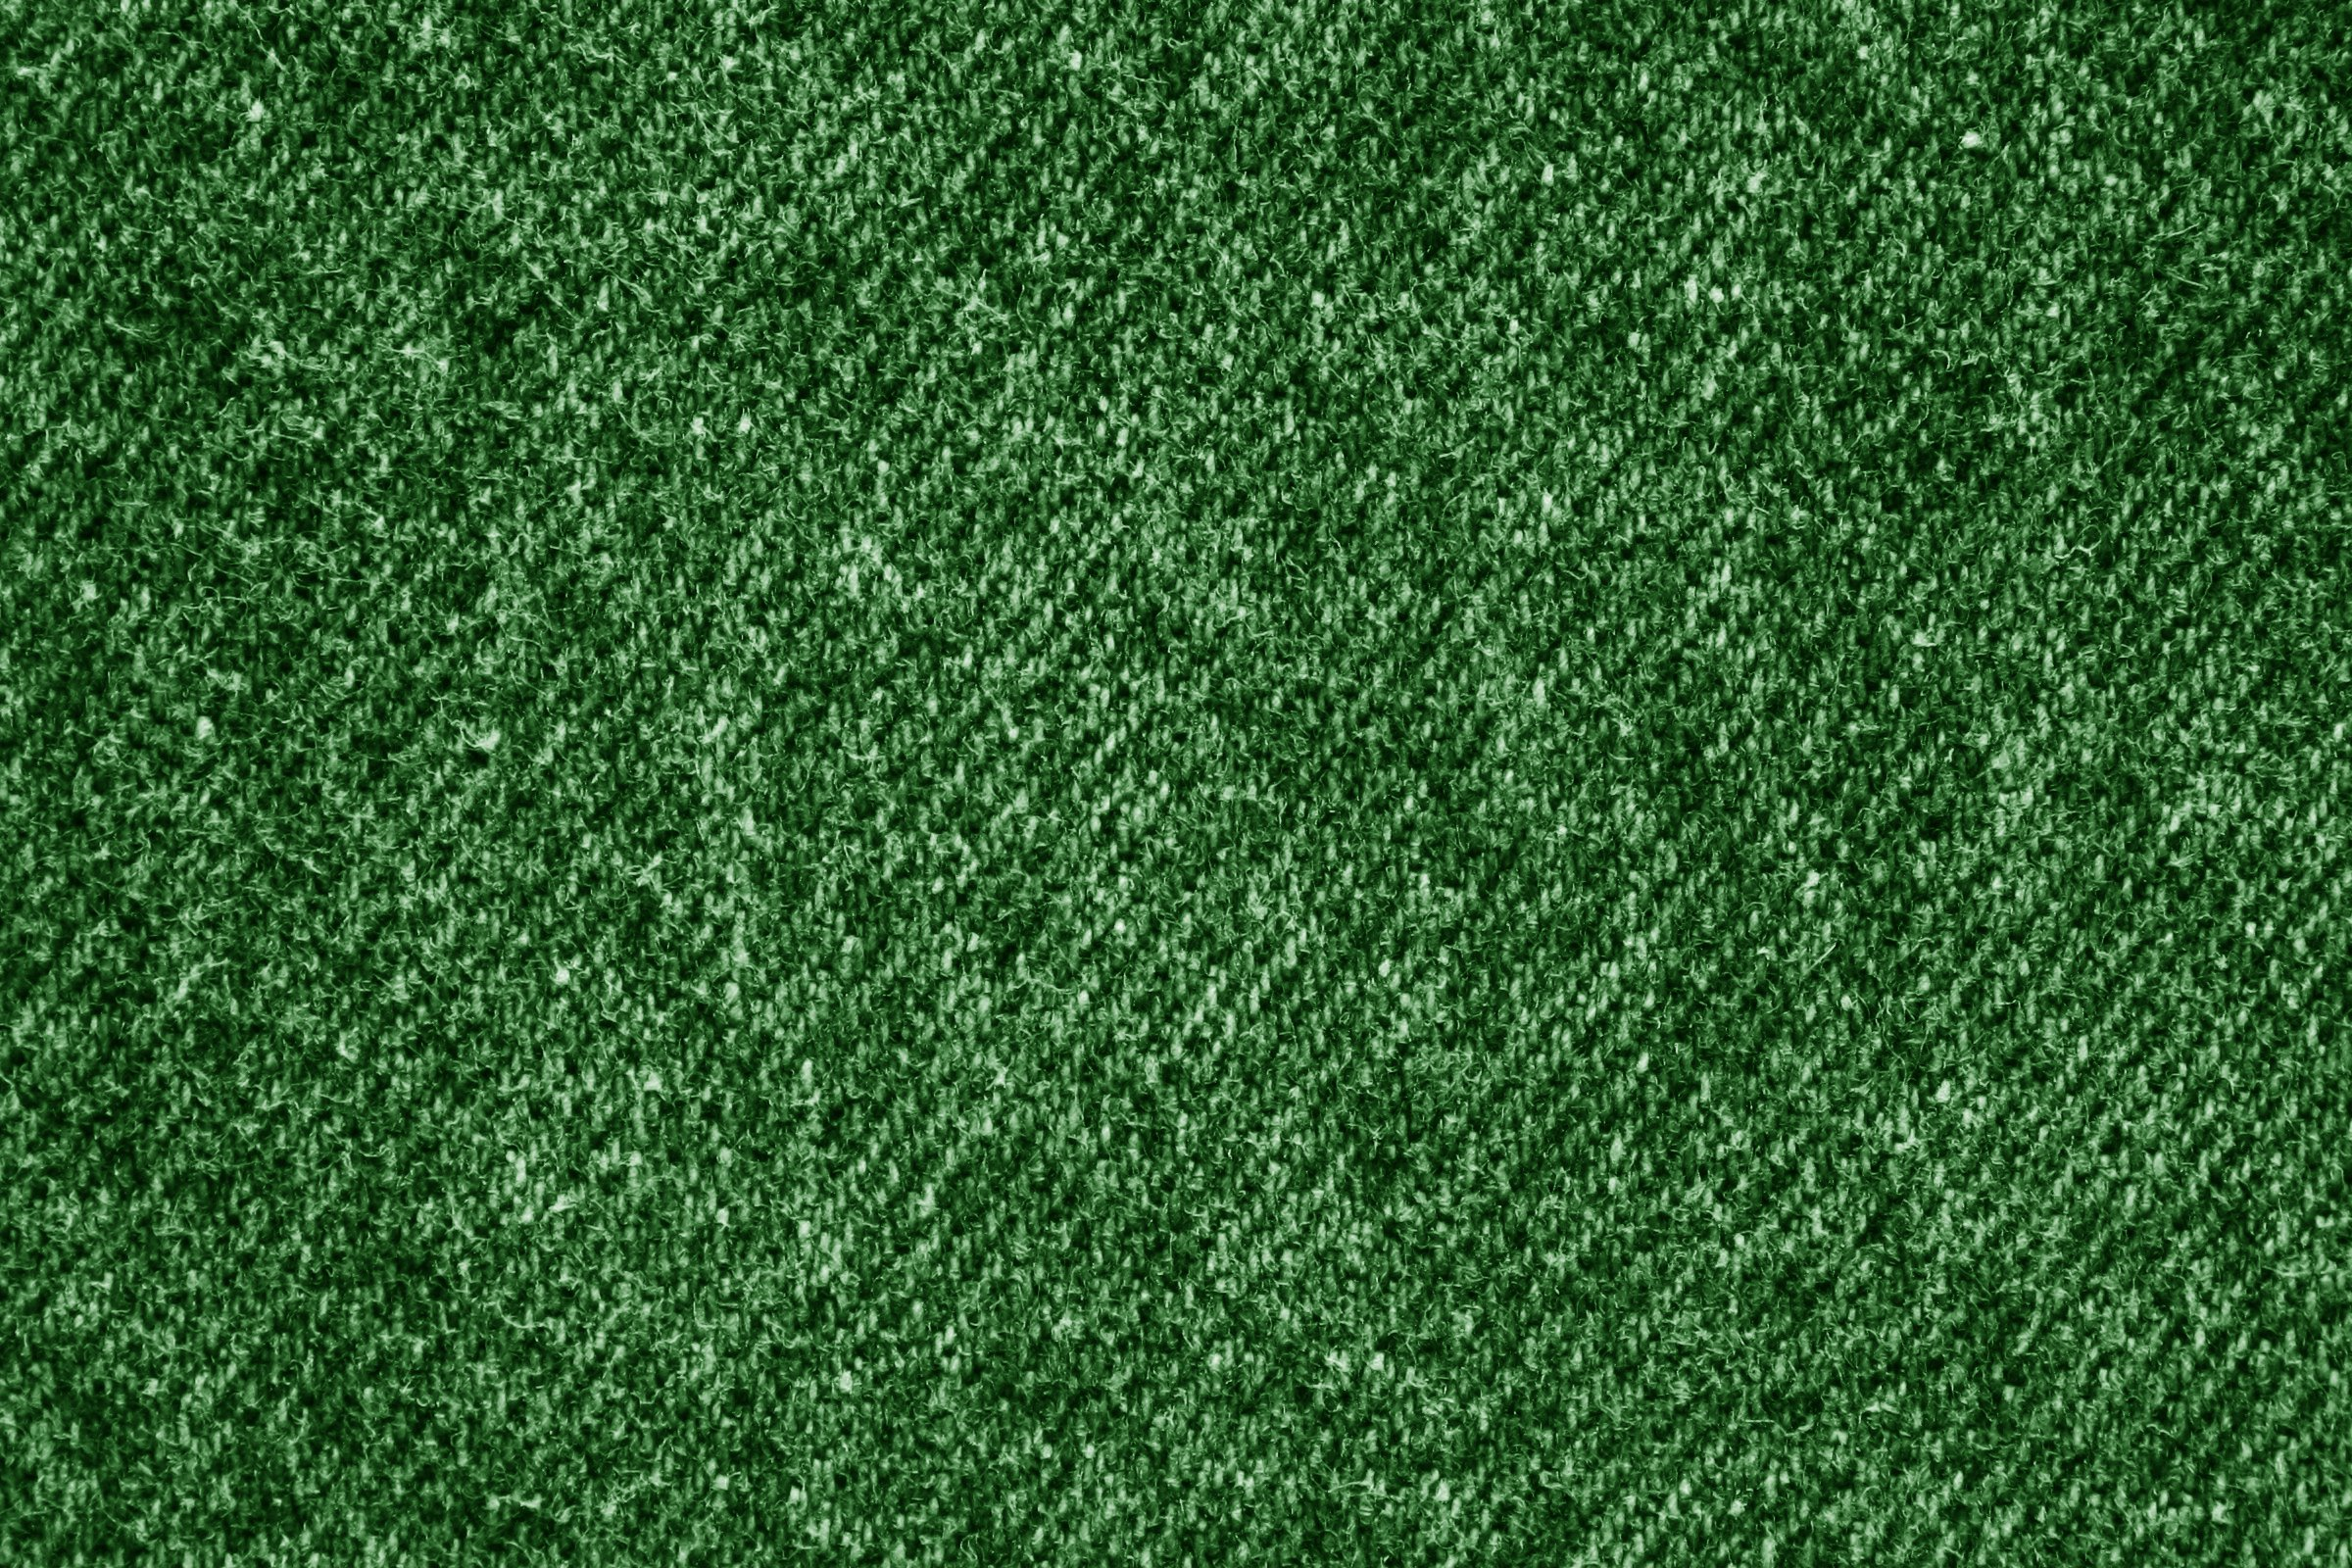 green denim fabric texture picture